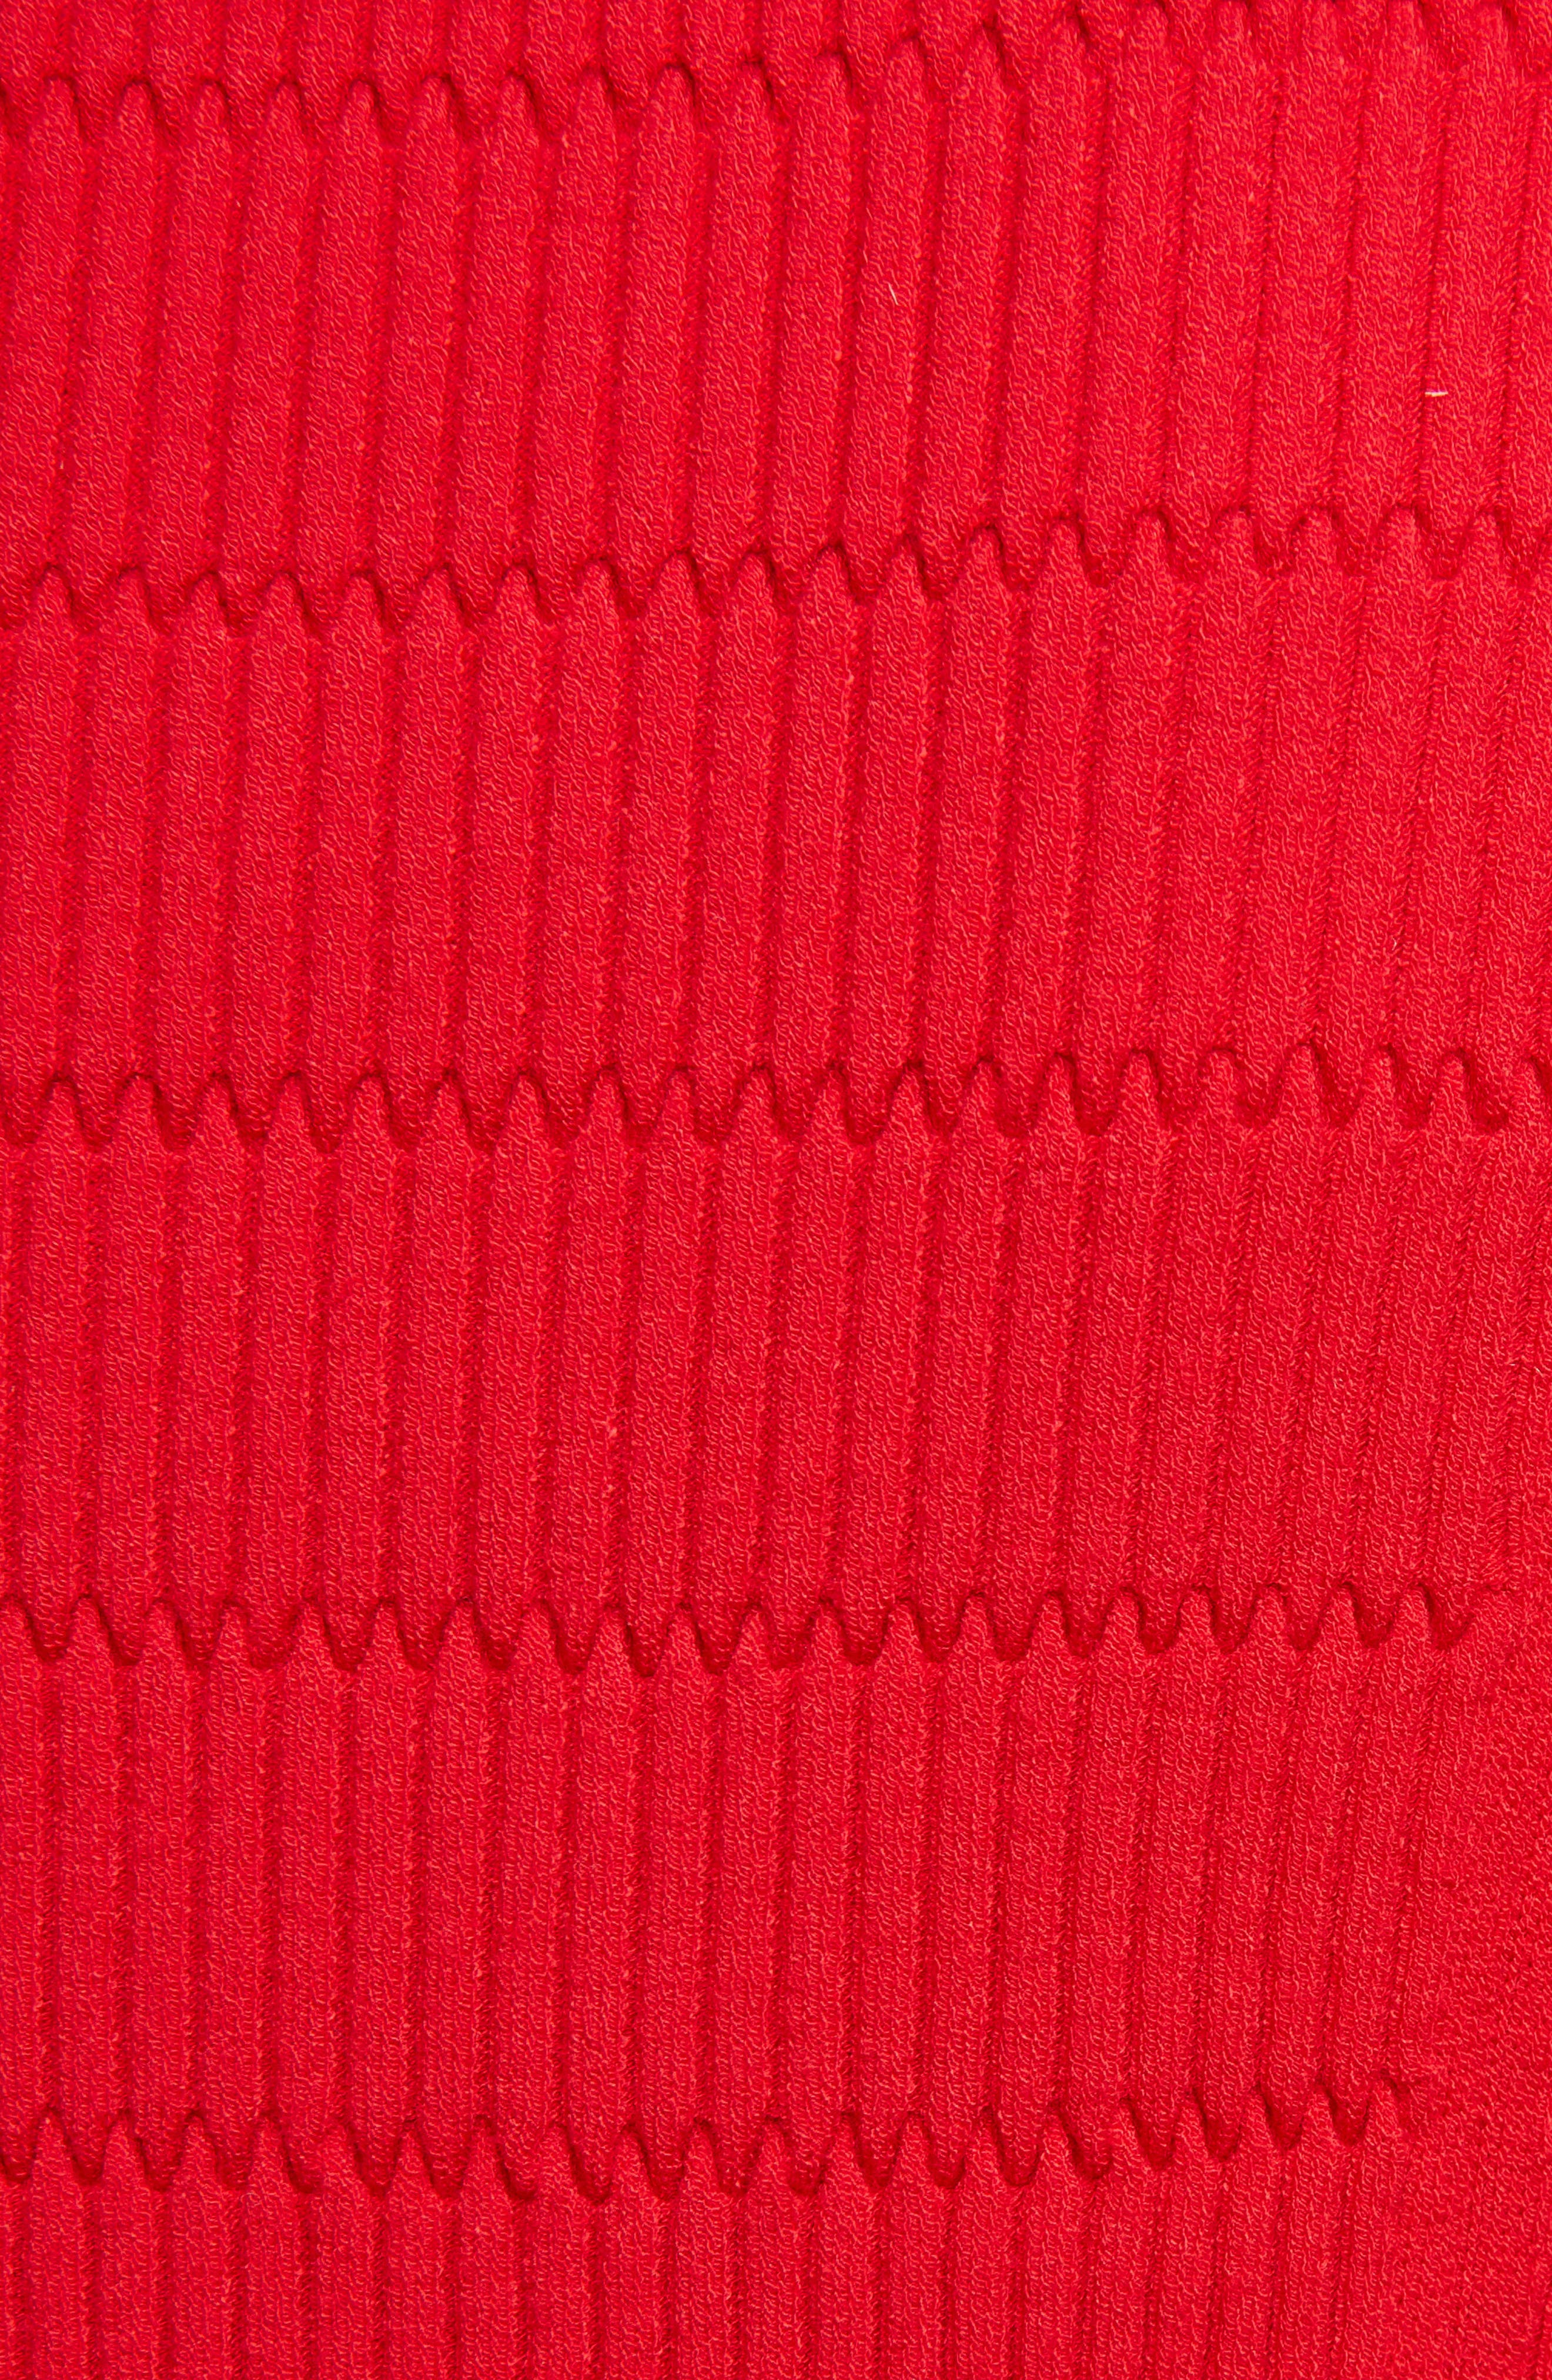 Textured Knit Dress,                             Alternate thumbnail 5, color,                             RED